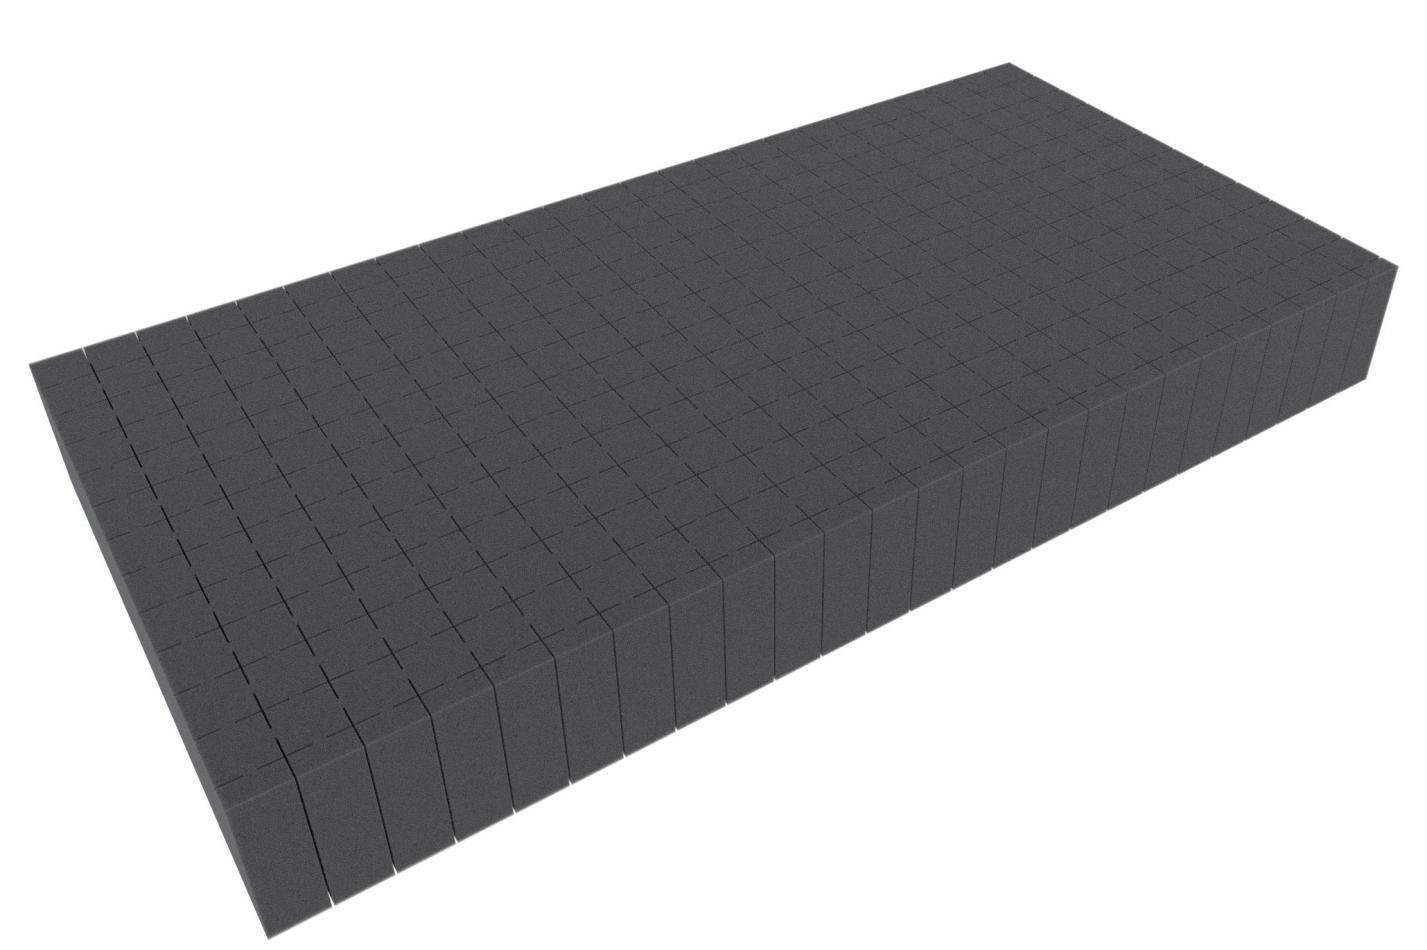 500 mm x 250 mm x 60 mm - Raster 20 mm - Pick and Pluck / Pre-Cubed foam tray